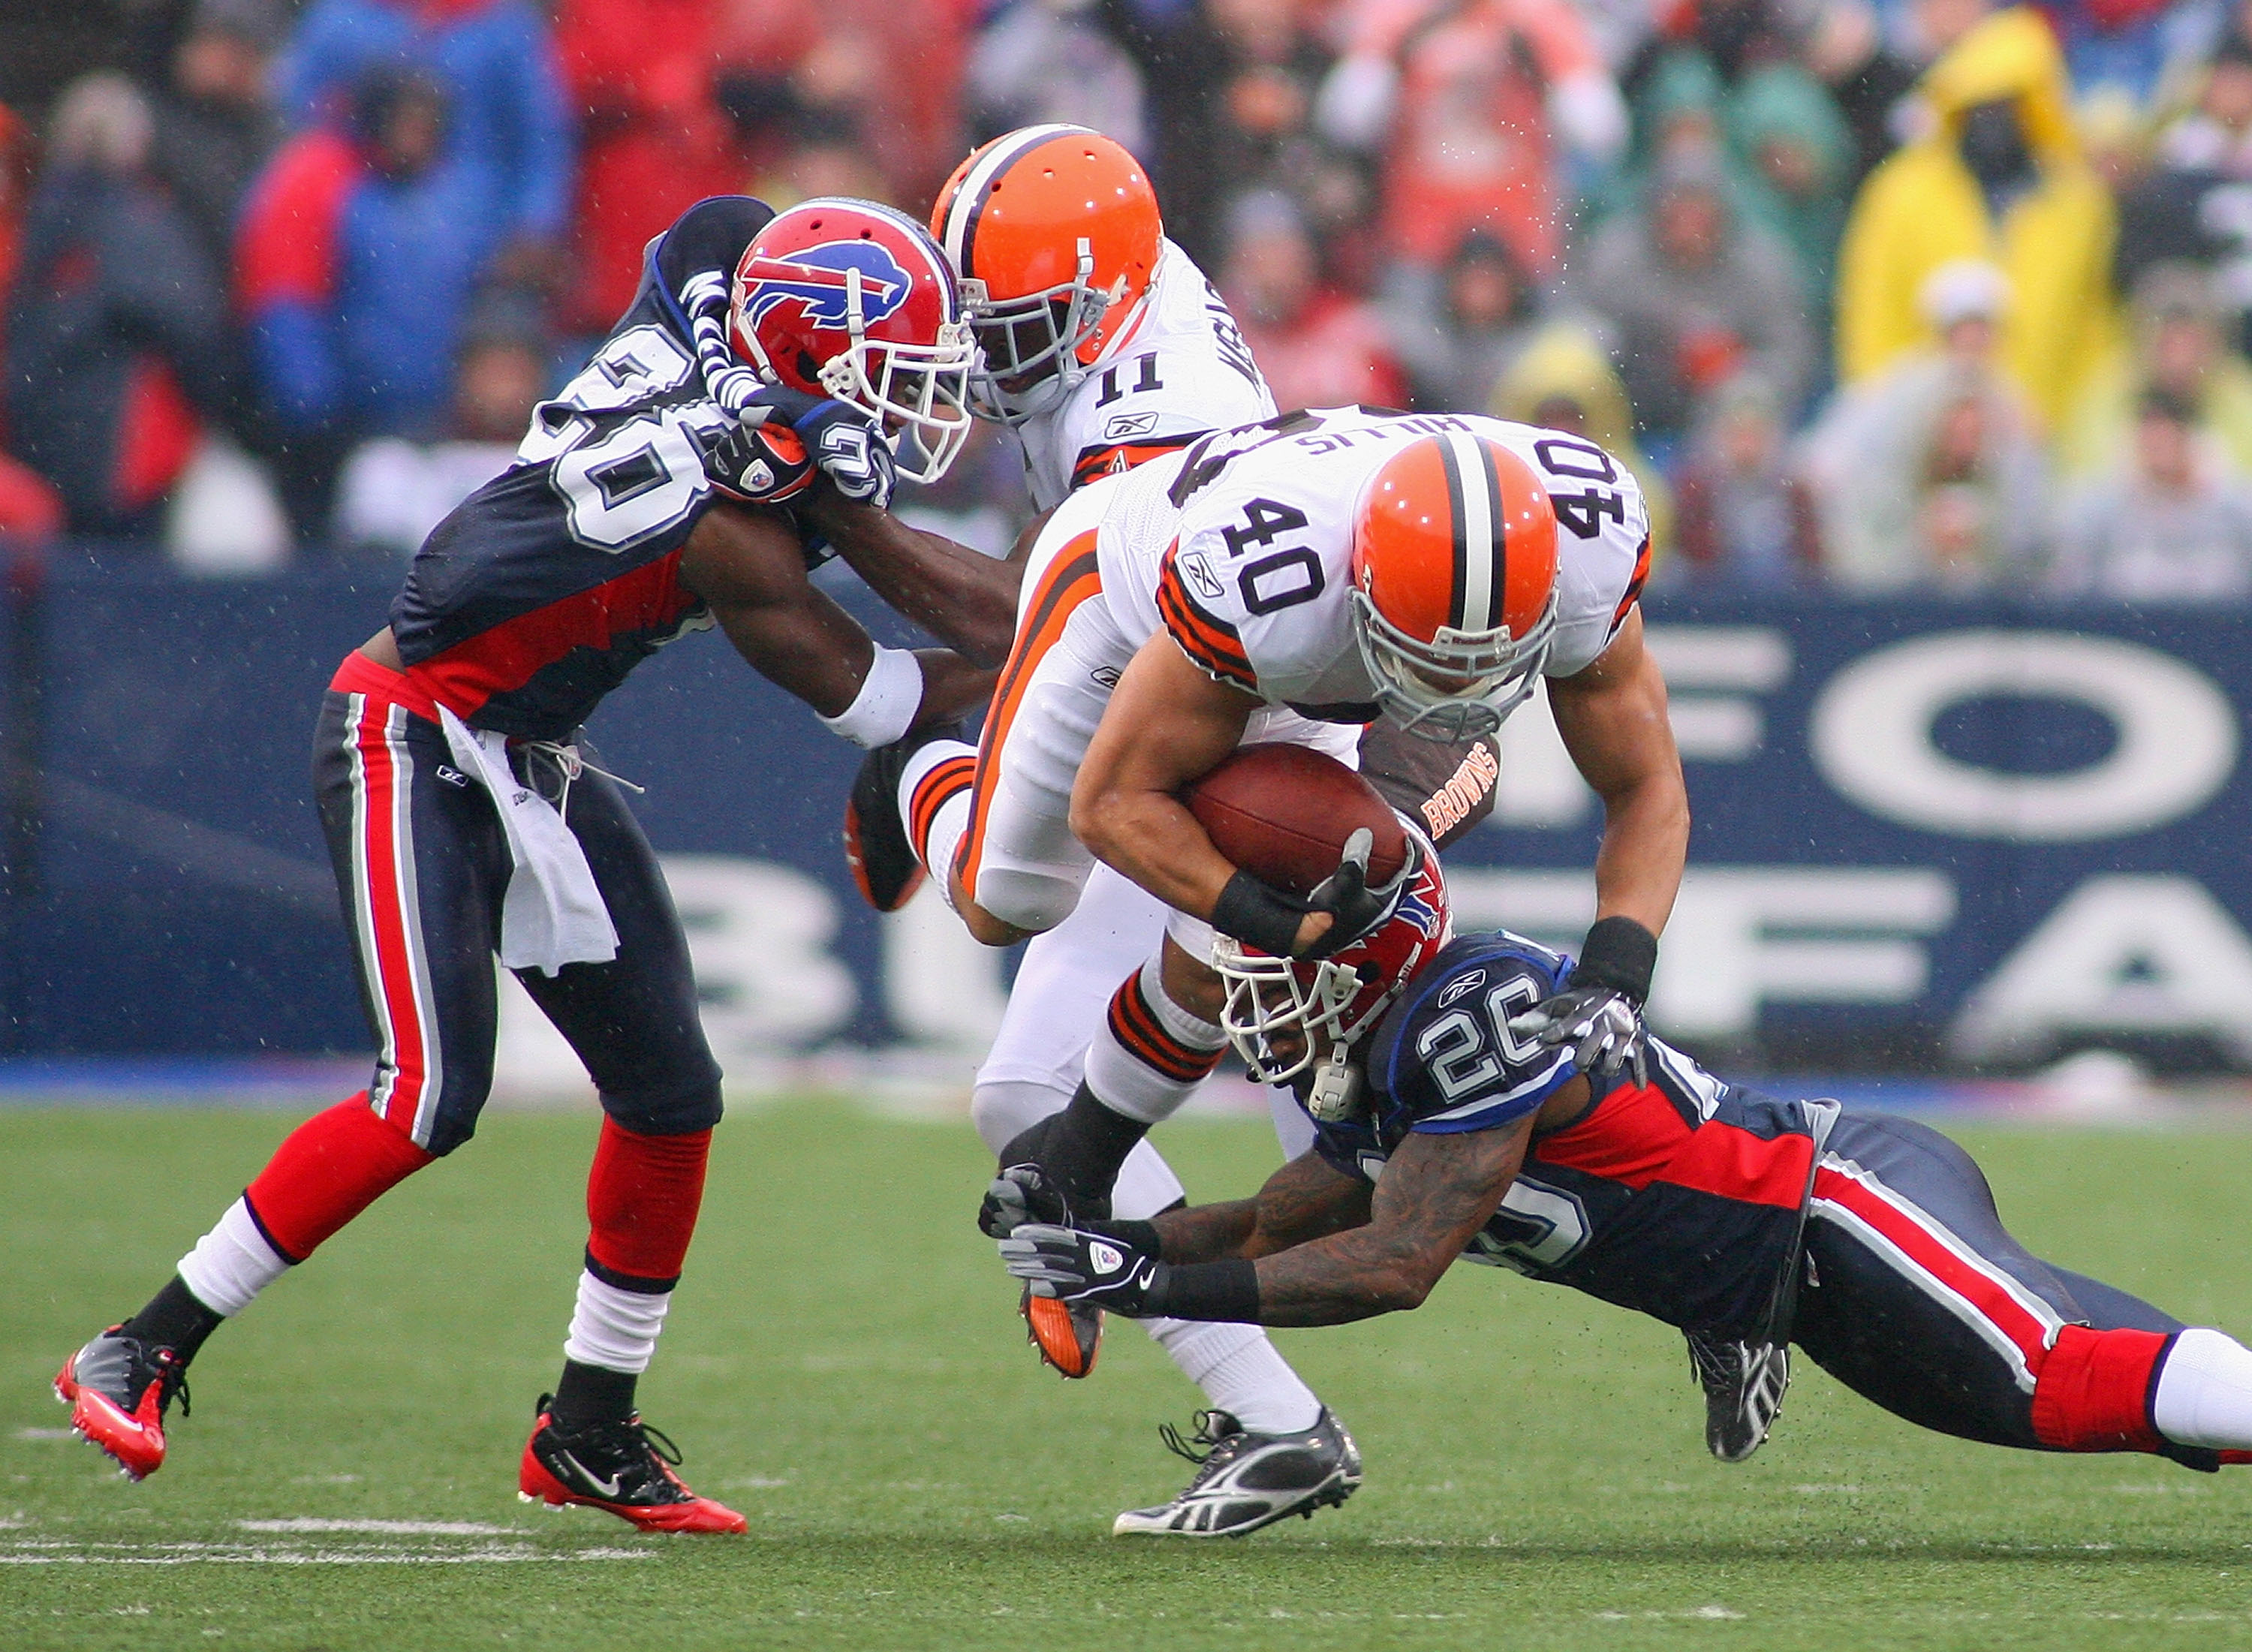 ORCHARD PARK, NY - DECEMBER 12: Peyton Hillis #41 of the Cleveland Browns is tackled by Ashton Youboty #26 of the Buffalo Bills  at Ralph Wilson Stadium on December 12, 2010 in Orchard Park, New York.  (Photo by Rick Stewart/Getty Images)